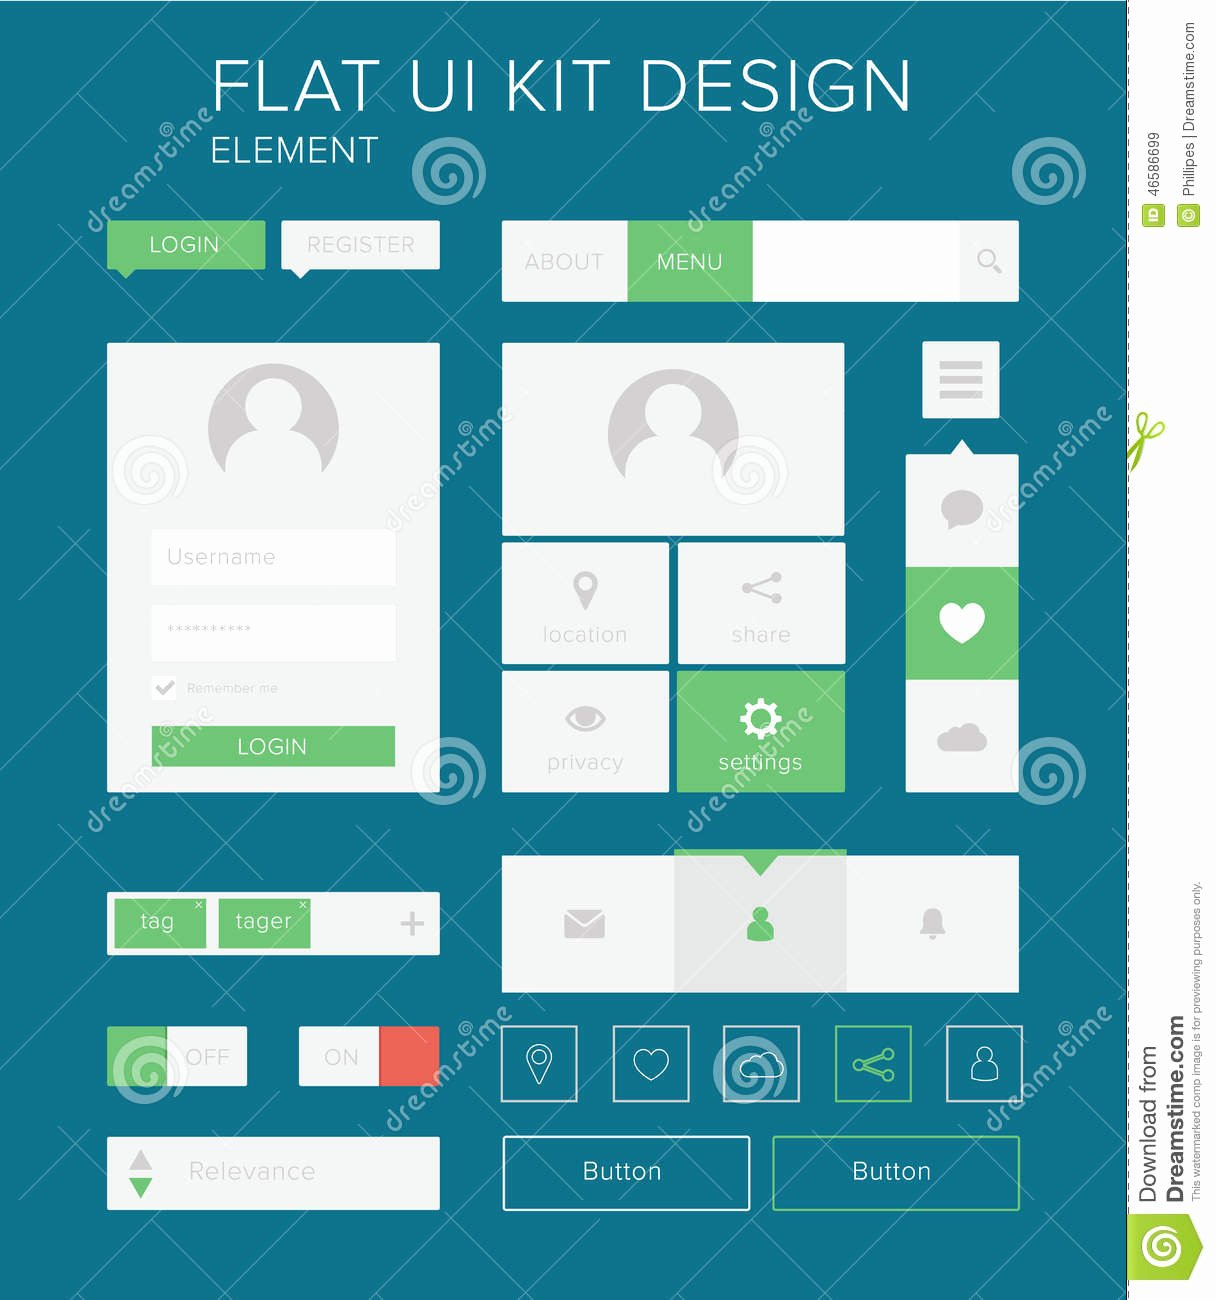 Design A button Kit Luxury Flat Ui Kit Design Elements Set for Webdesign Stock Vector